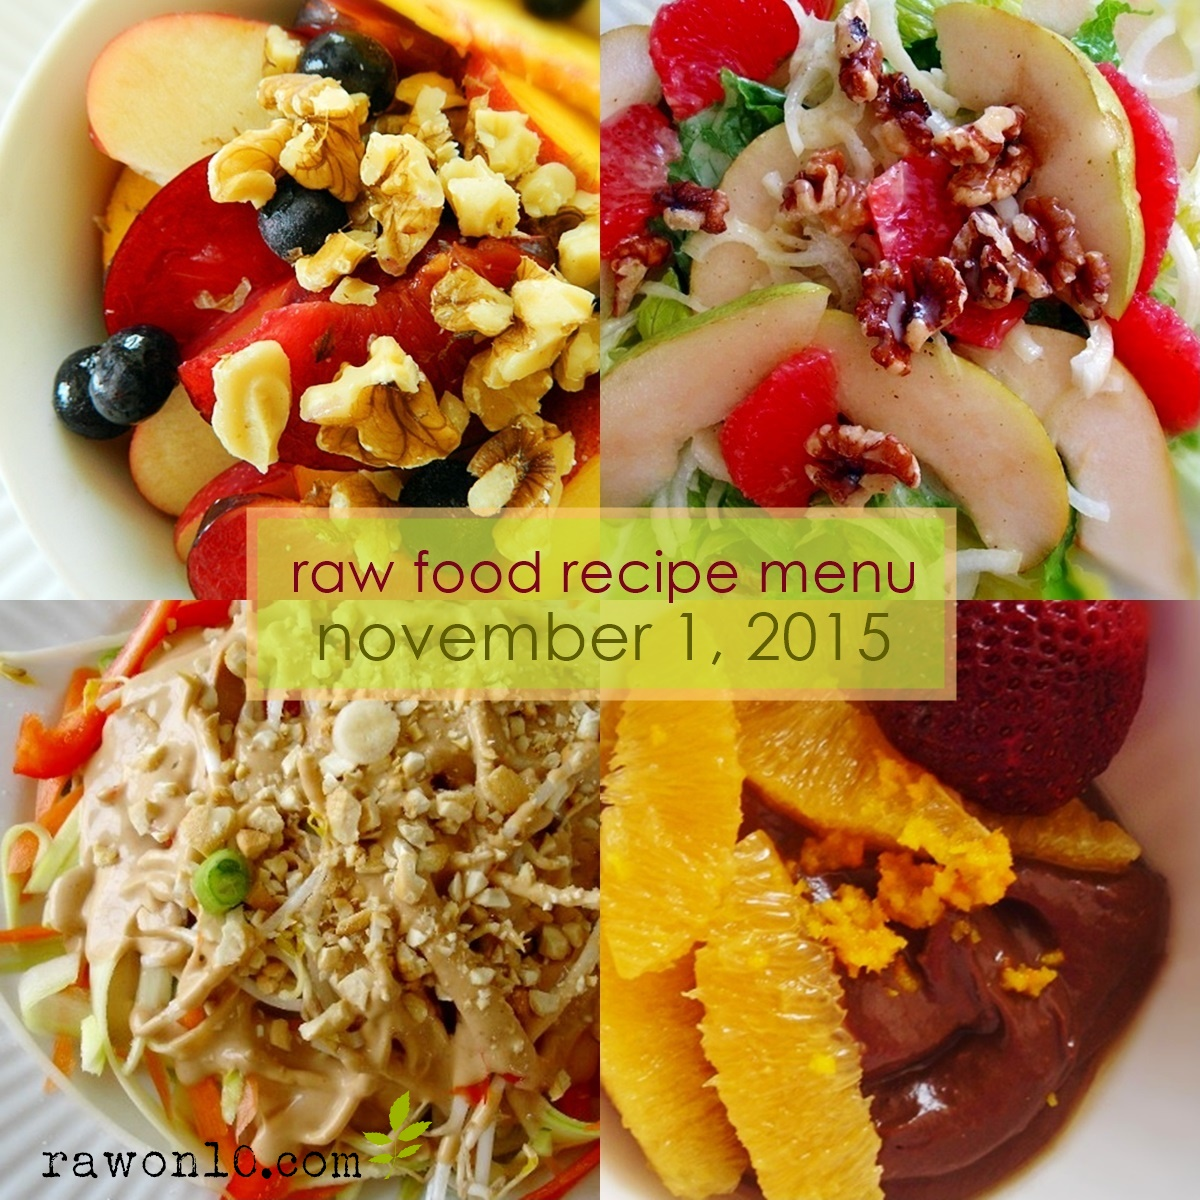 Raw on 10 a day or less raw food recipe menu november 1 2015 raw food recipe menu november 1 2015 forumfinder Choice Image